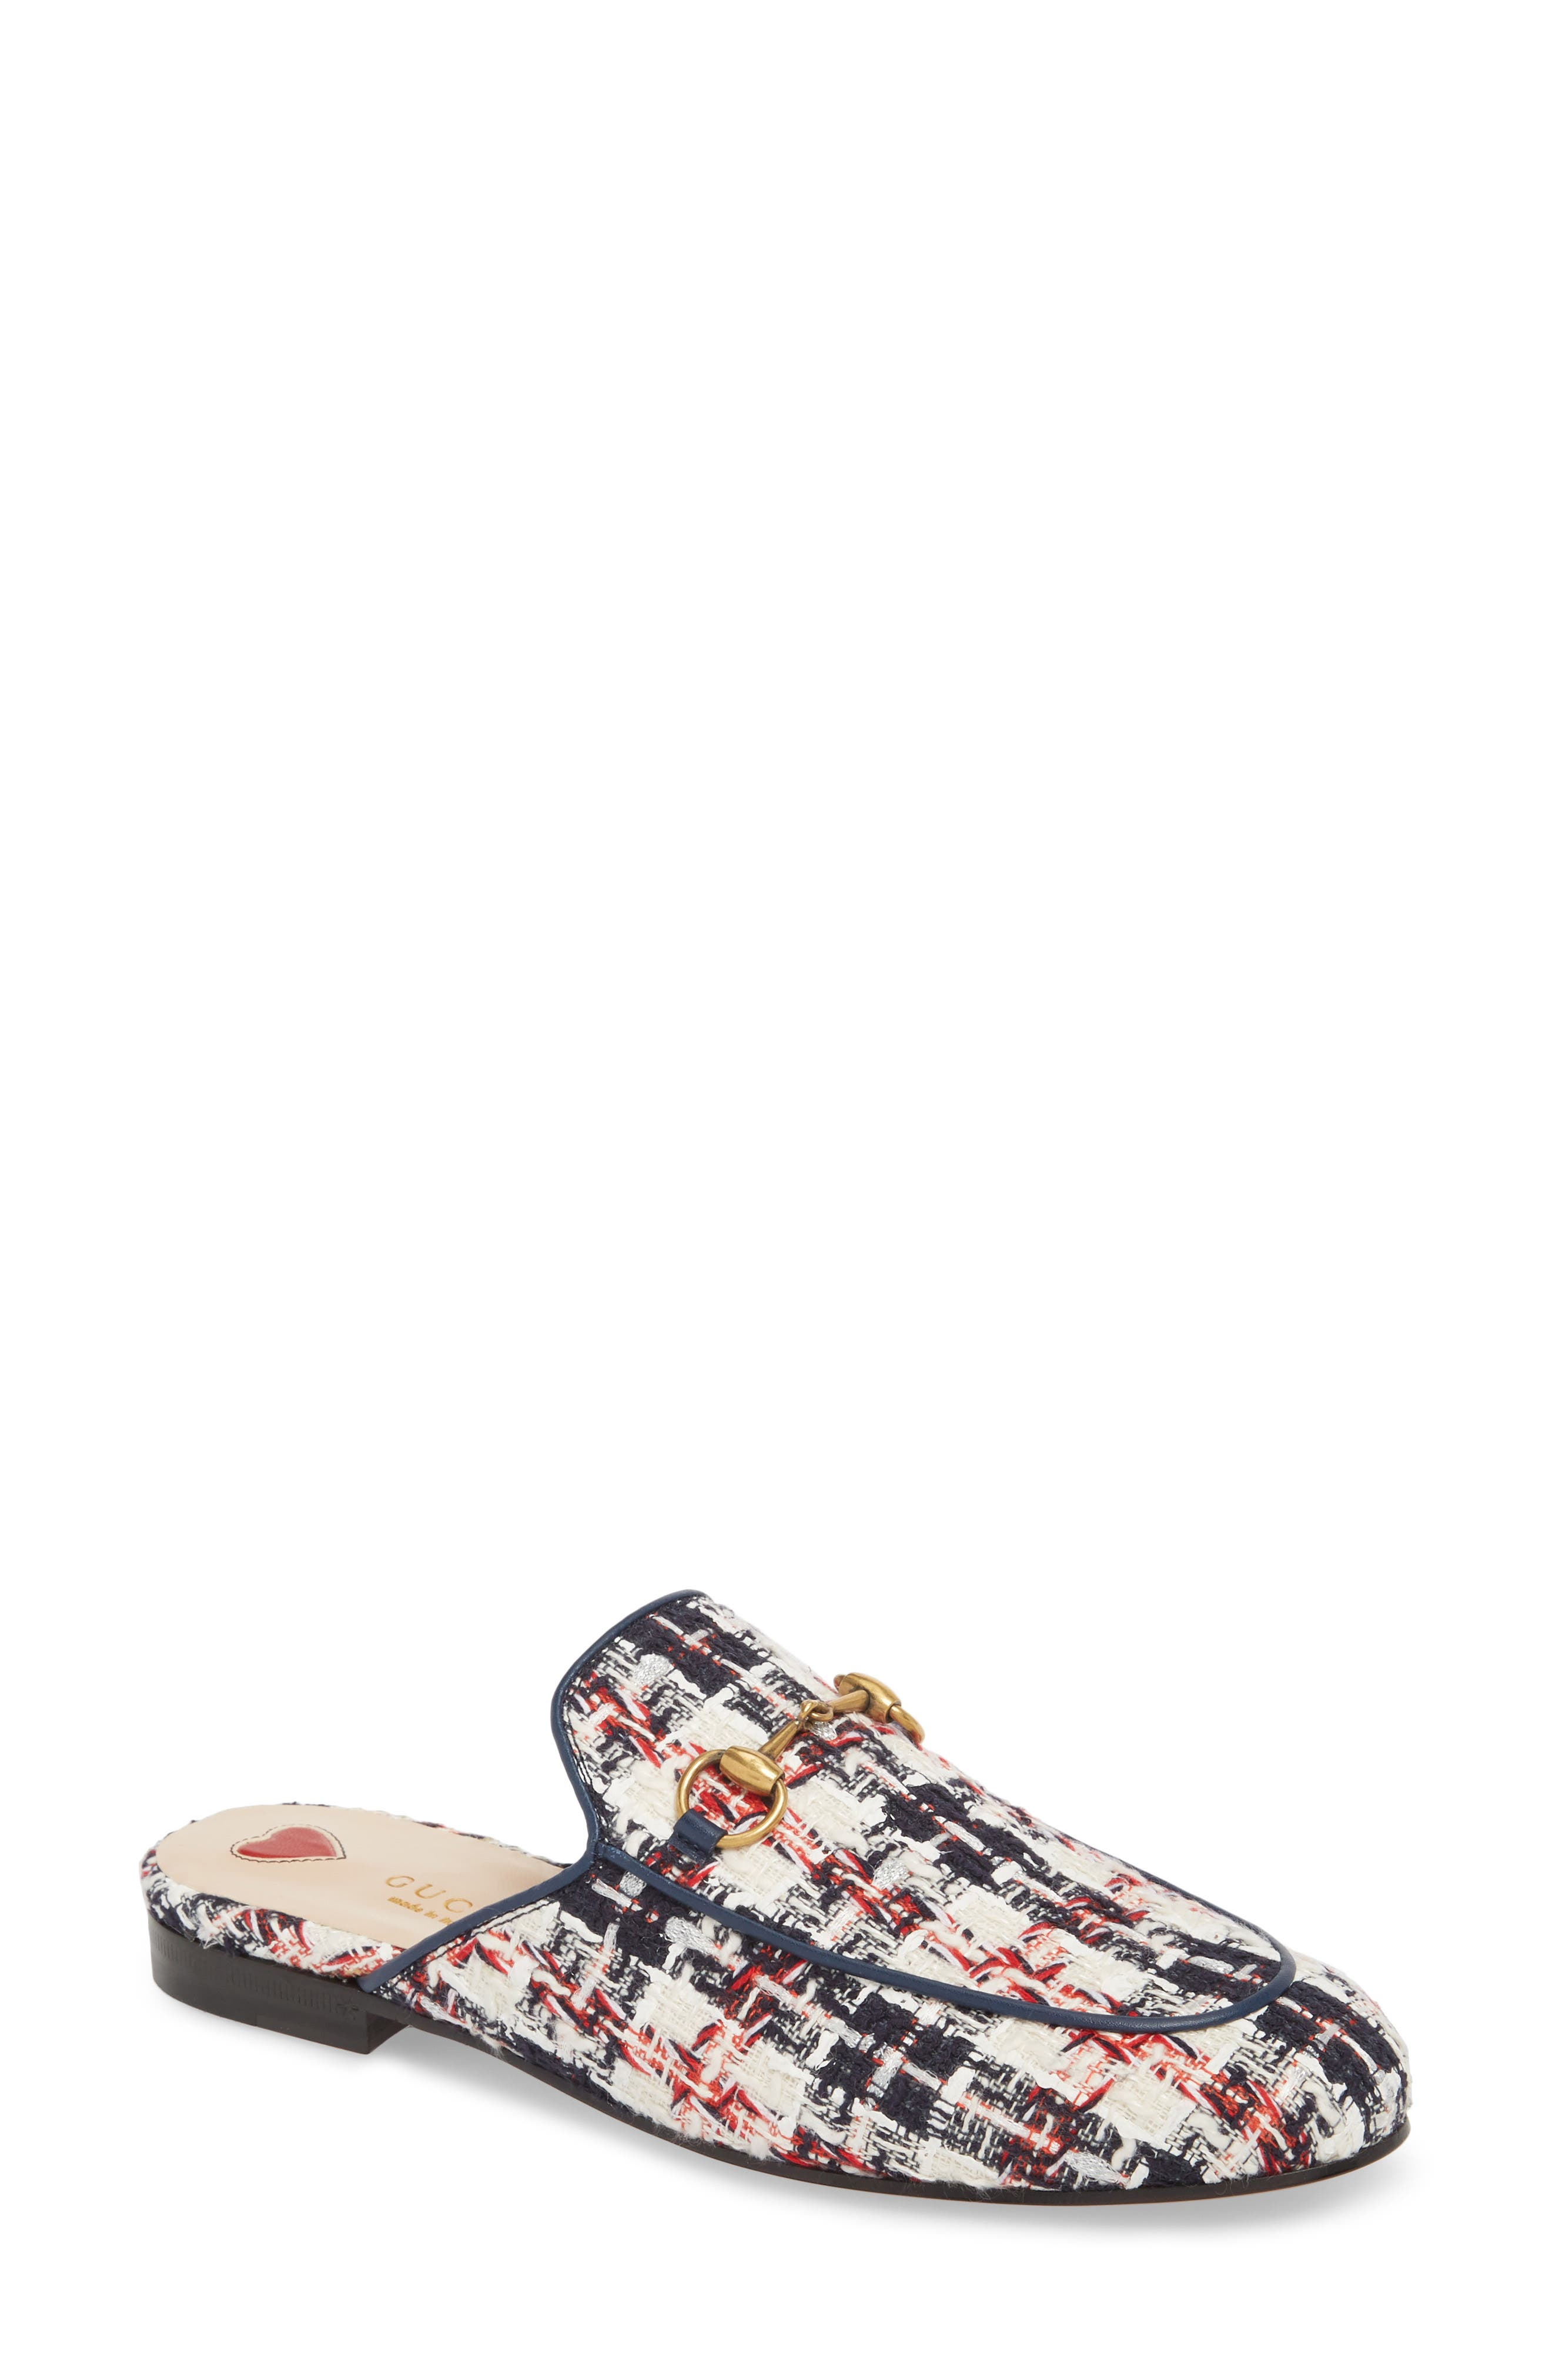 Princetown Loafer Mule,                         Main,                         color, Blue/ White/ Red